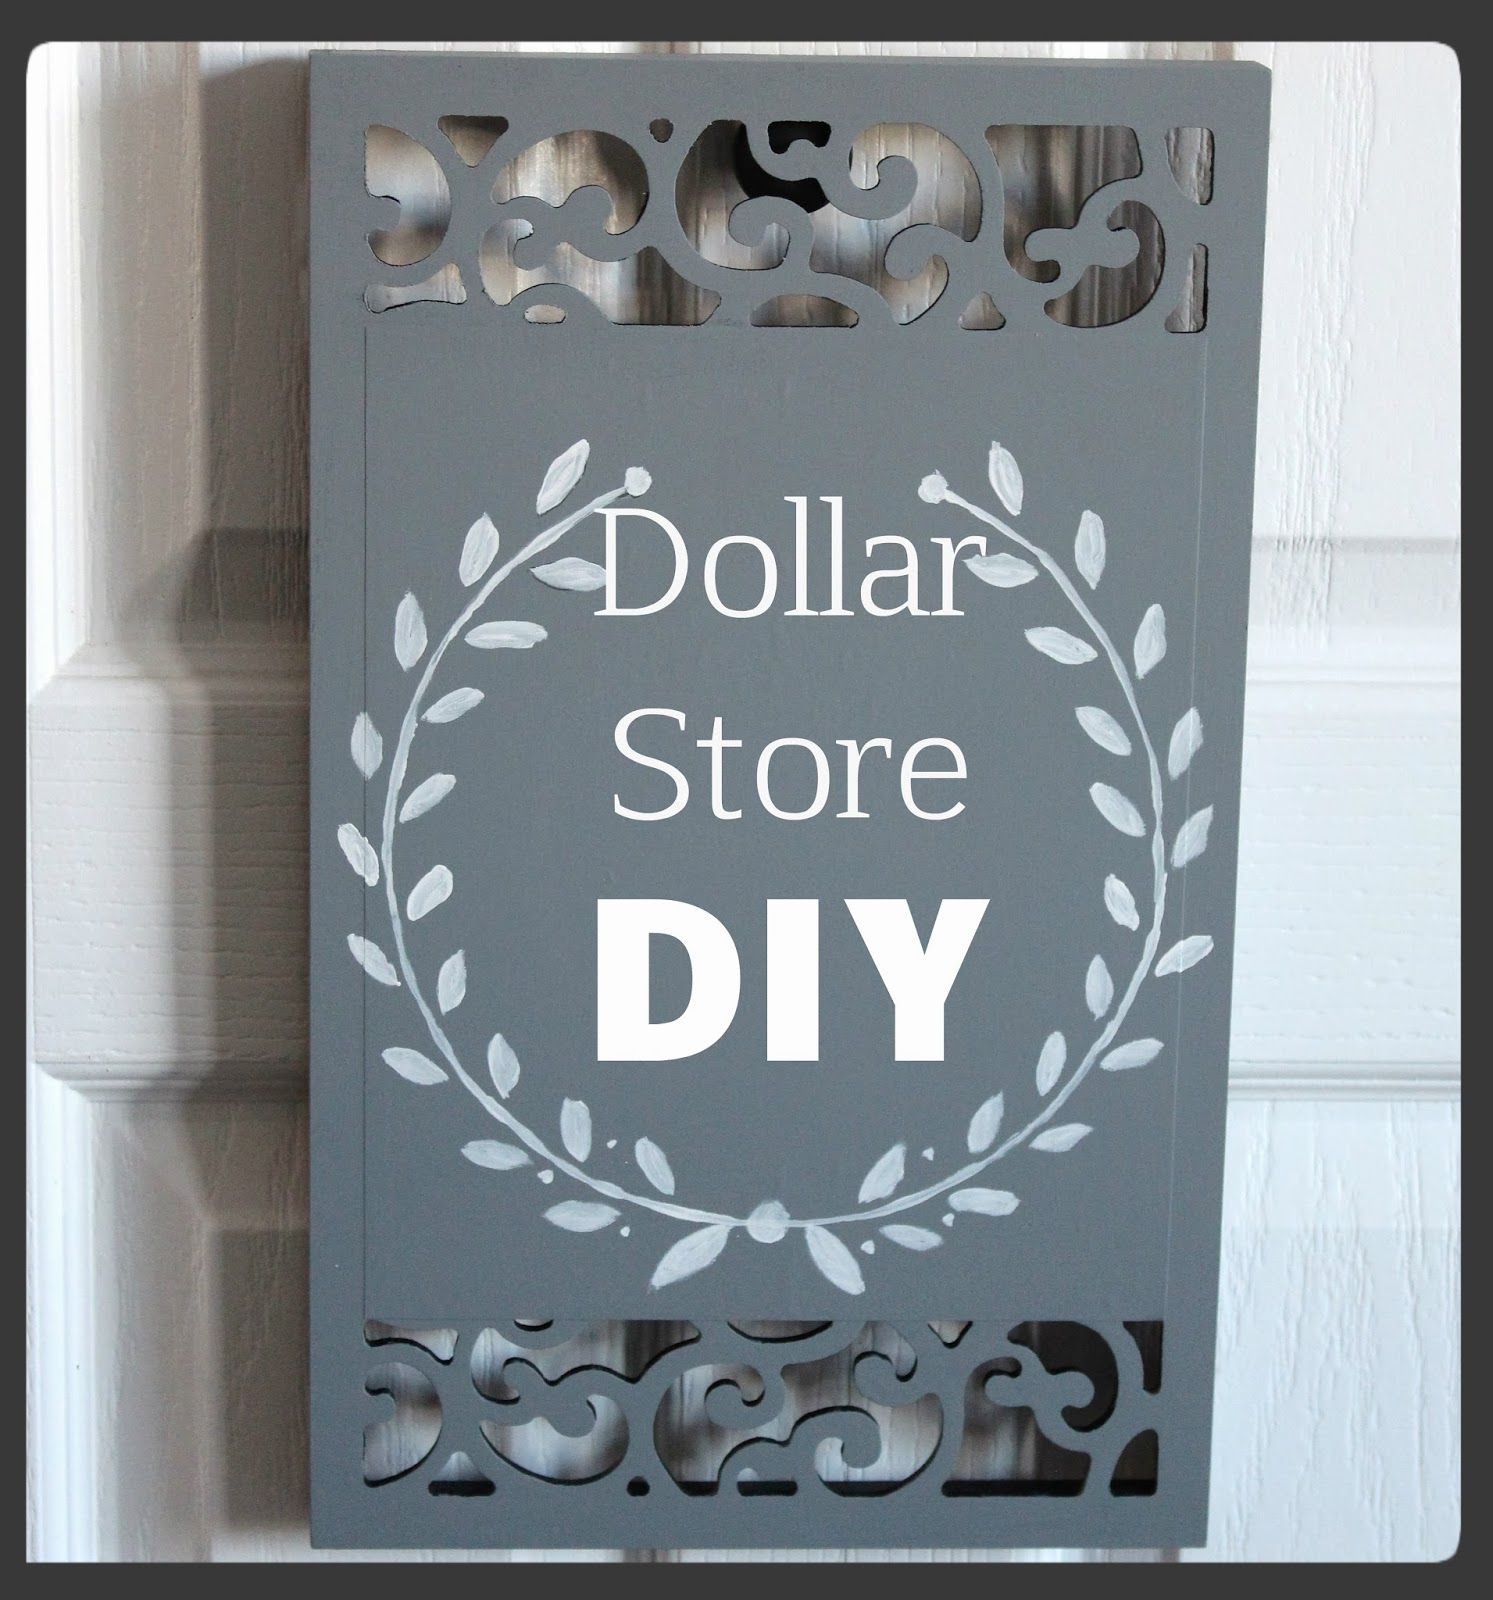 ChicByTab 5 Dollar Store DIY Decor